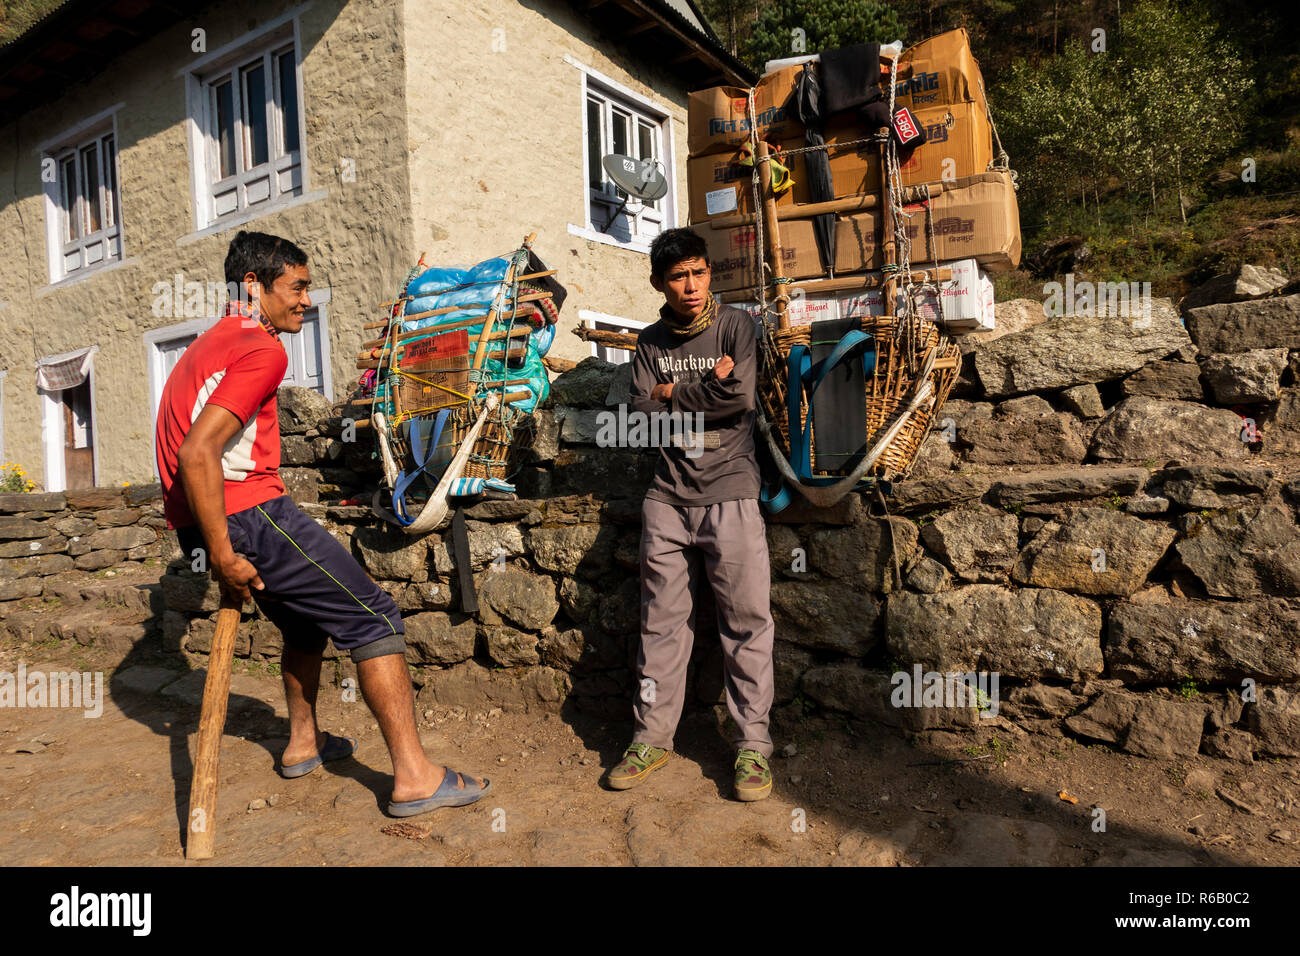 Nepal, Thado Koshi Gaon, young porters resting beside their heavy packs on way to Namche Bazaar - Stock Image